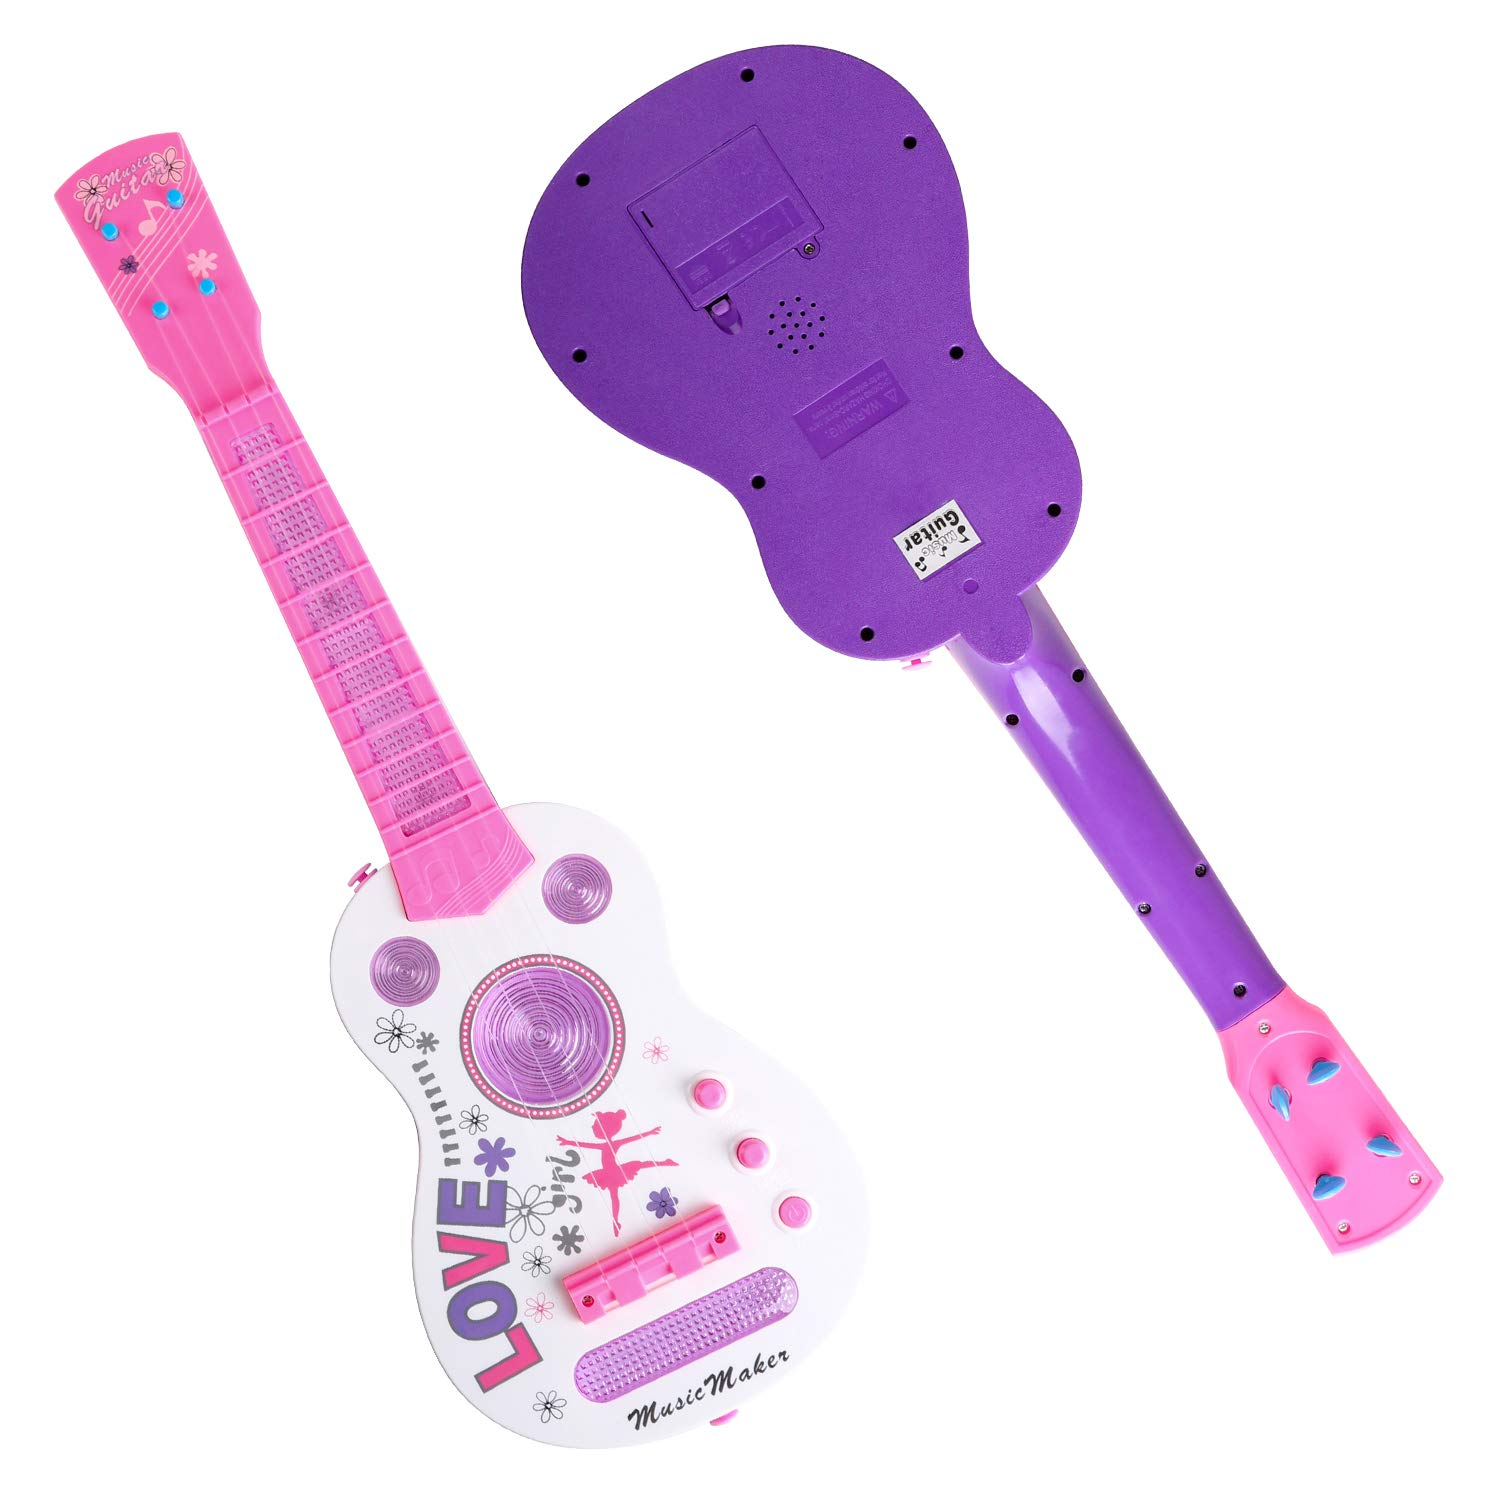 Amazon.com: TWFRIC Kids Guitar Electric Battery Operated Toy Guitar Flash Light Musical Educational Toy for Boys Girls Child (21 Inch / Pink): Toys & Games